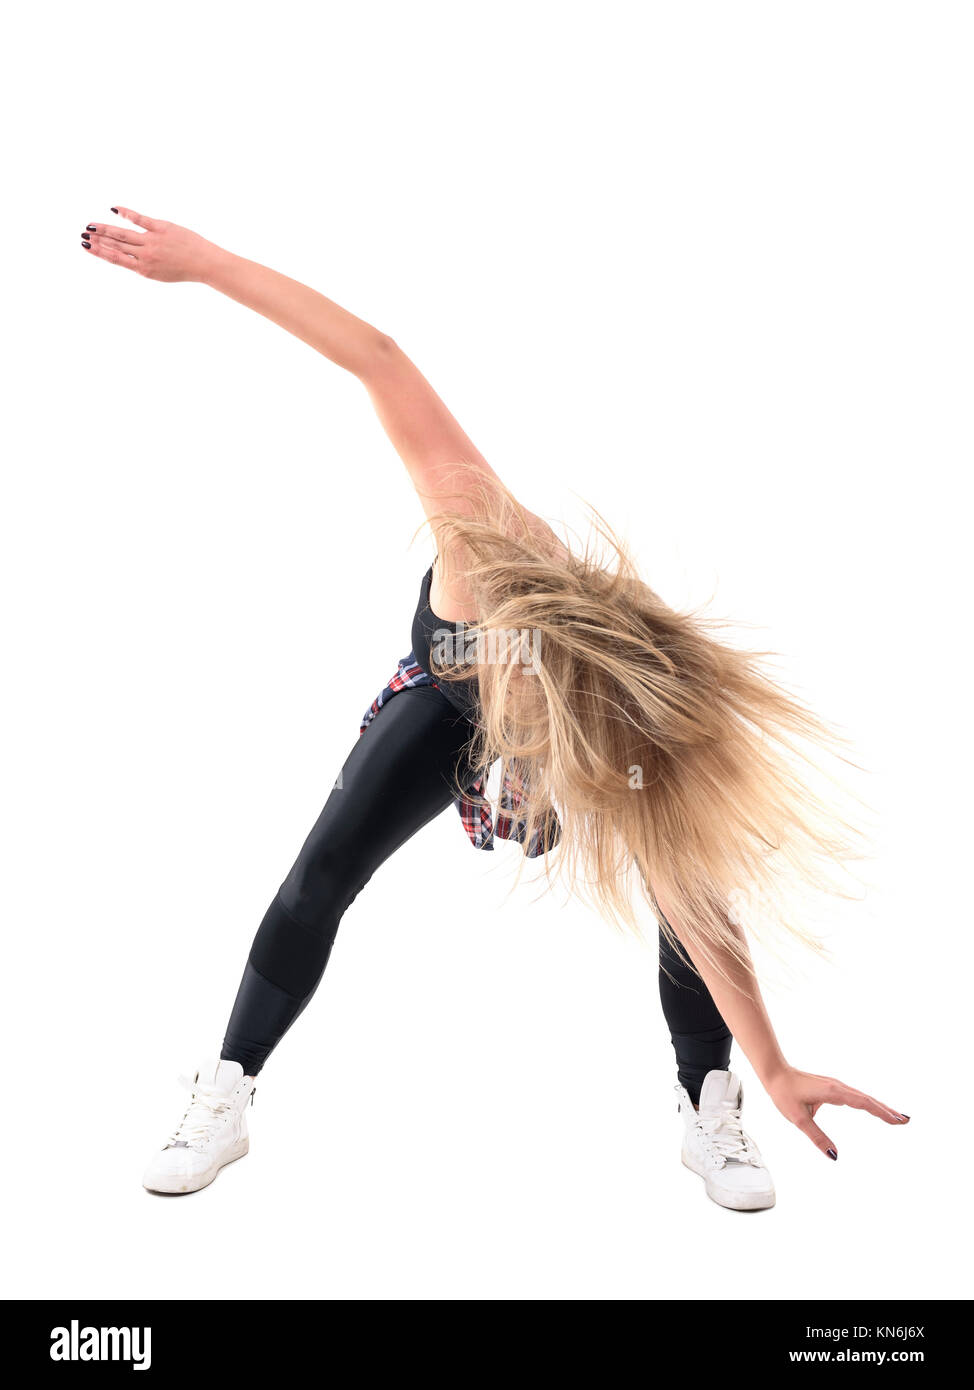 Action motion of bent woman aerobics instructor dancing jazz dance with flowing tousled hair. Full body length portrait - Stock Image